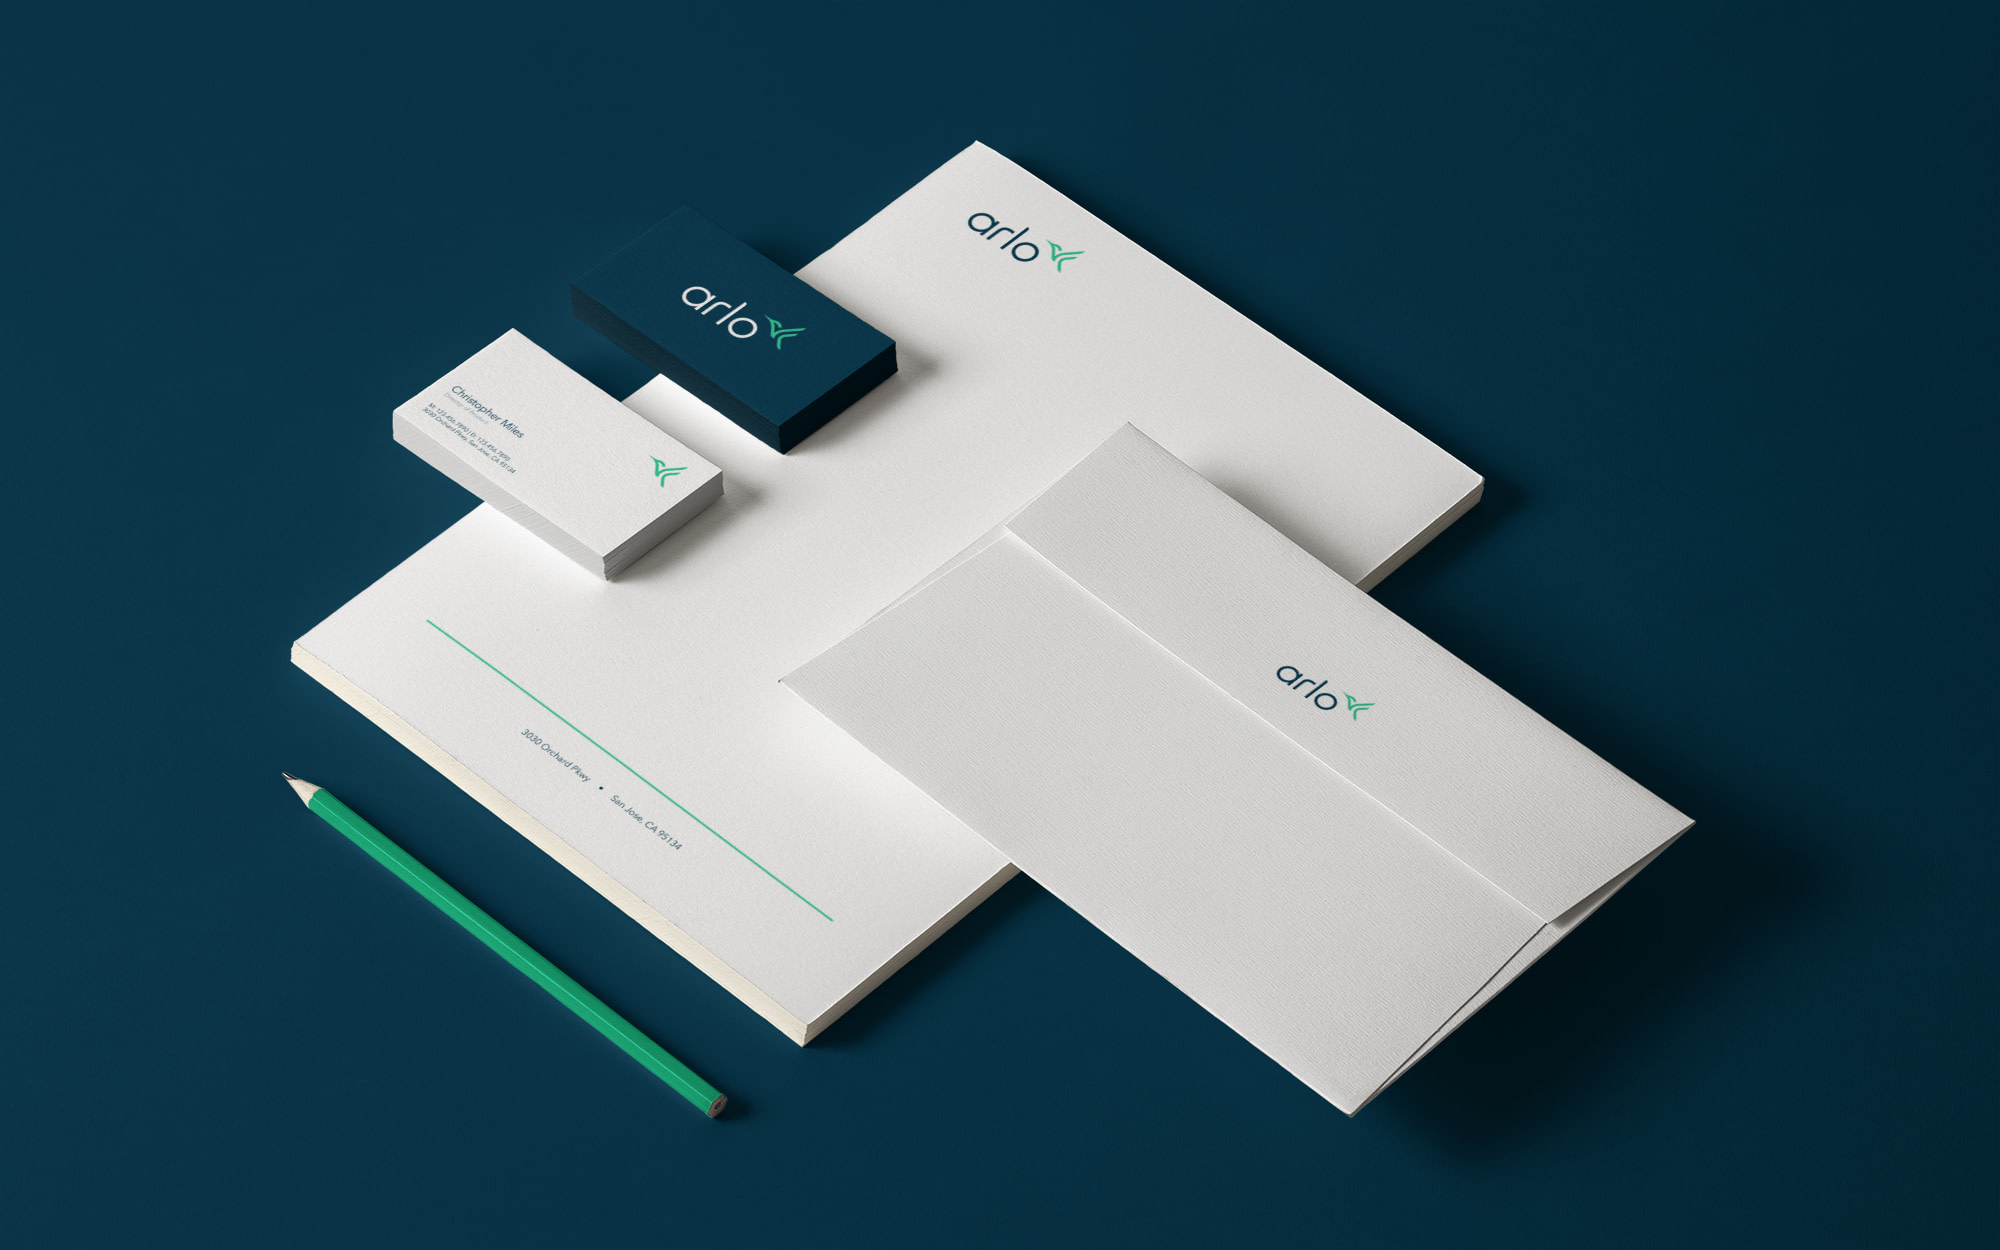 Photo of stationary and business cards designed for new Arlo brand identity.